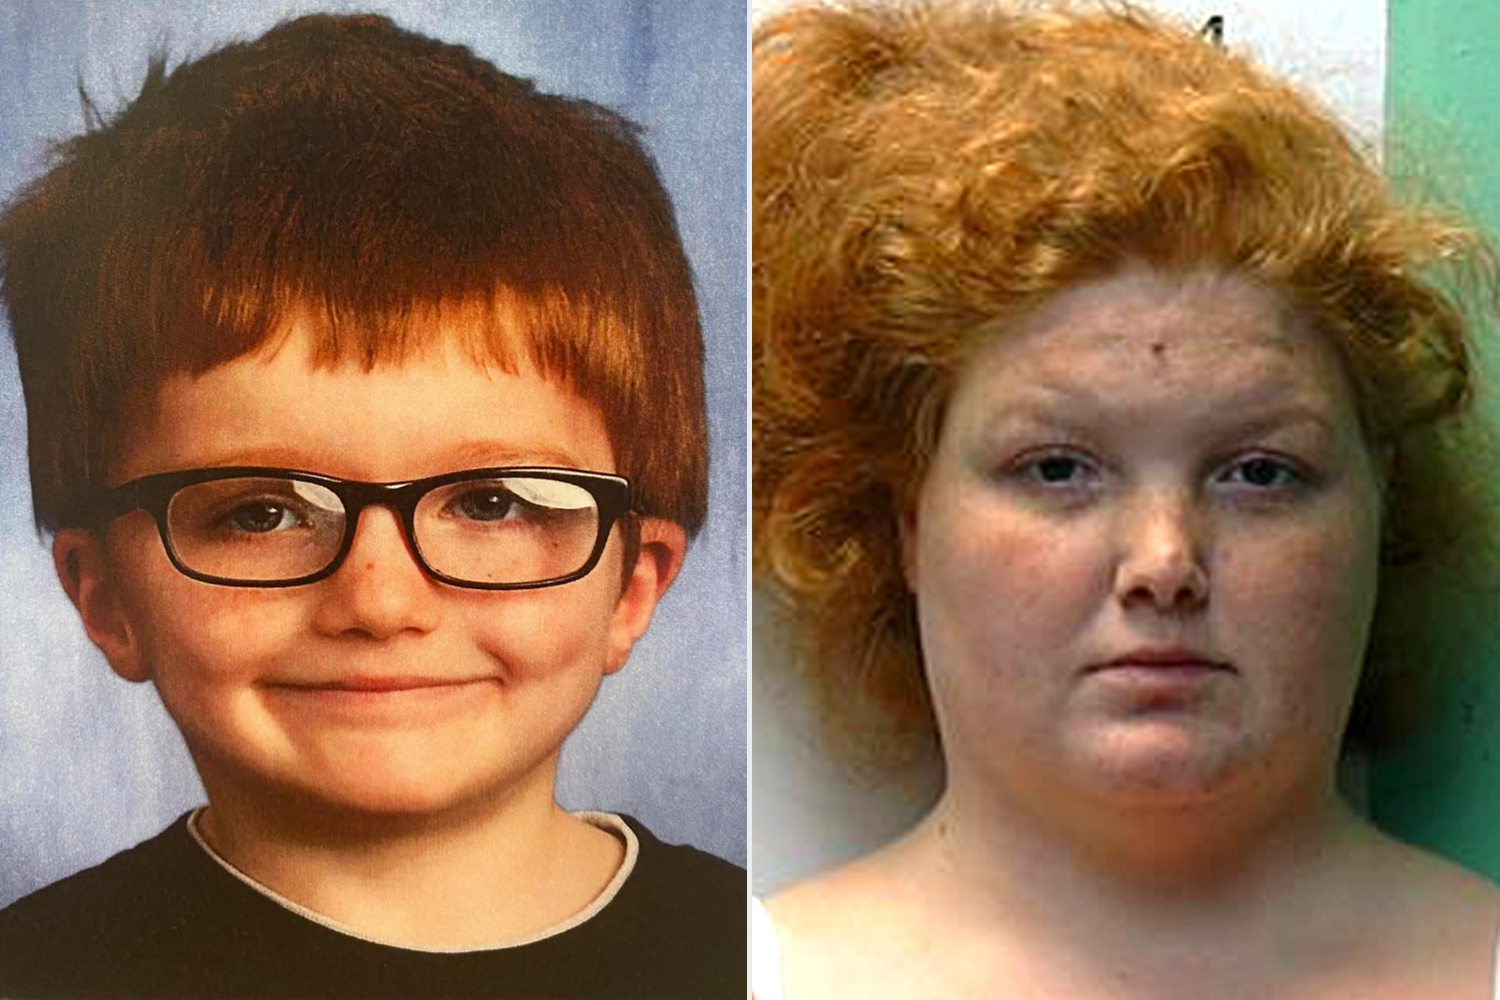 Mom Accused of Killing Son, 6, and Throwing Body in River Is Ruled Competent to Stand Trial